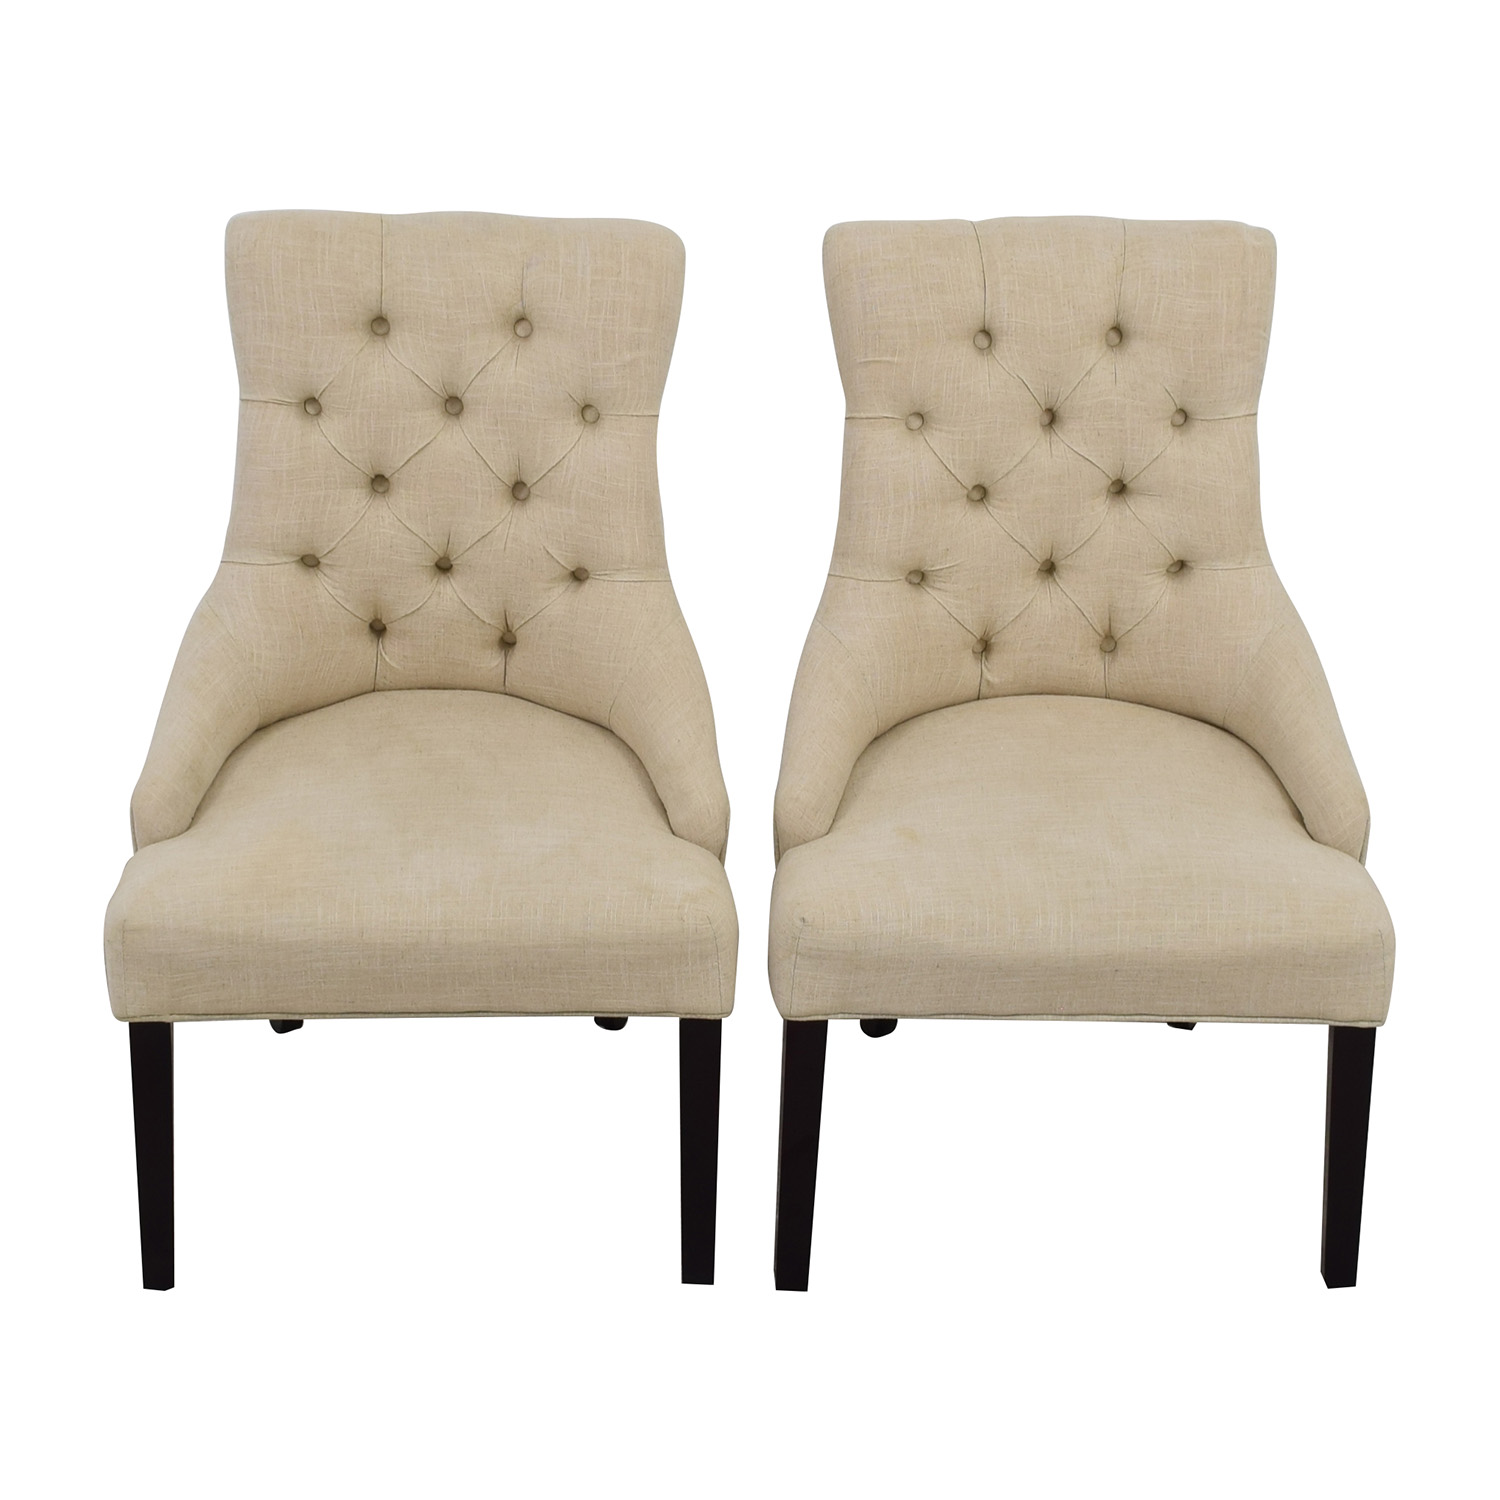 white tufted chair wooden high with tray 50 off raymour and flanigan